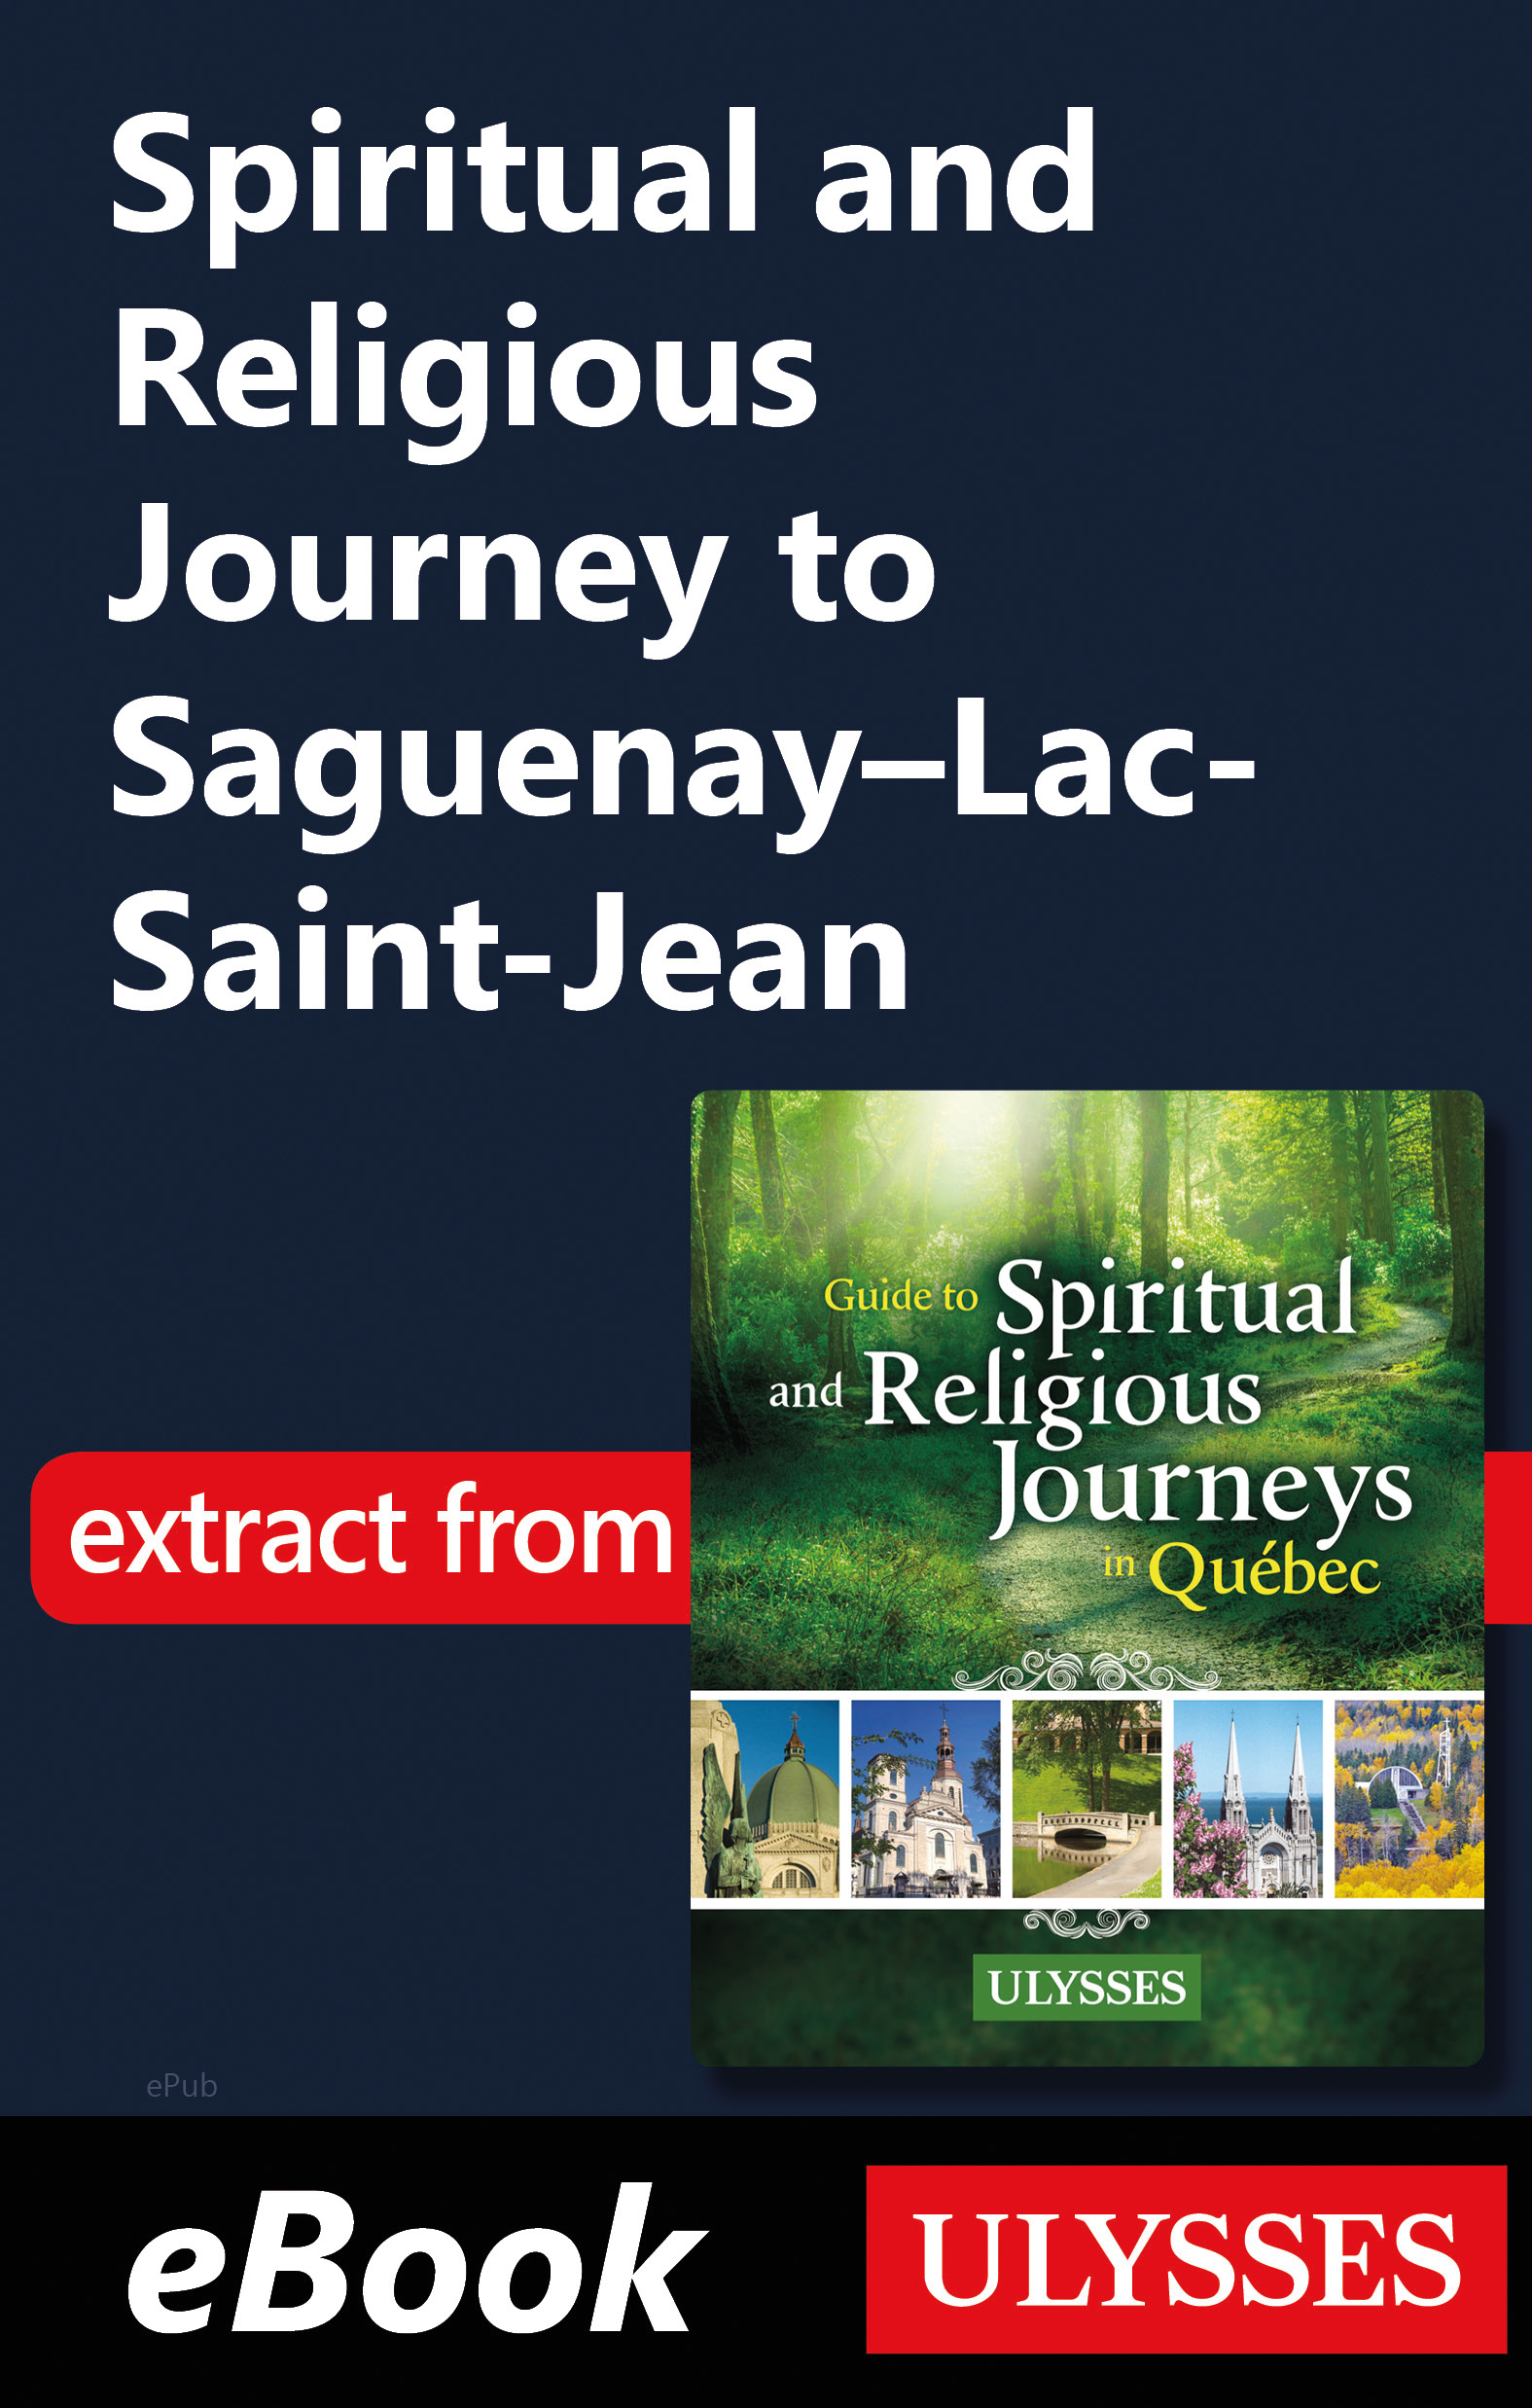 Spiritual and Religious Journey to Saguenay–Lac-Saint-Jean